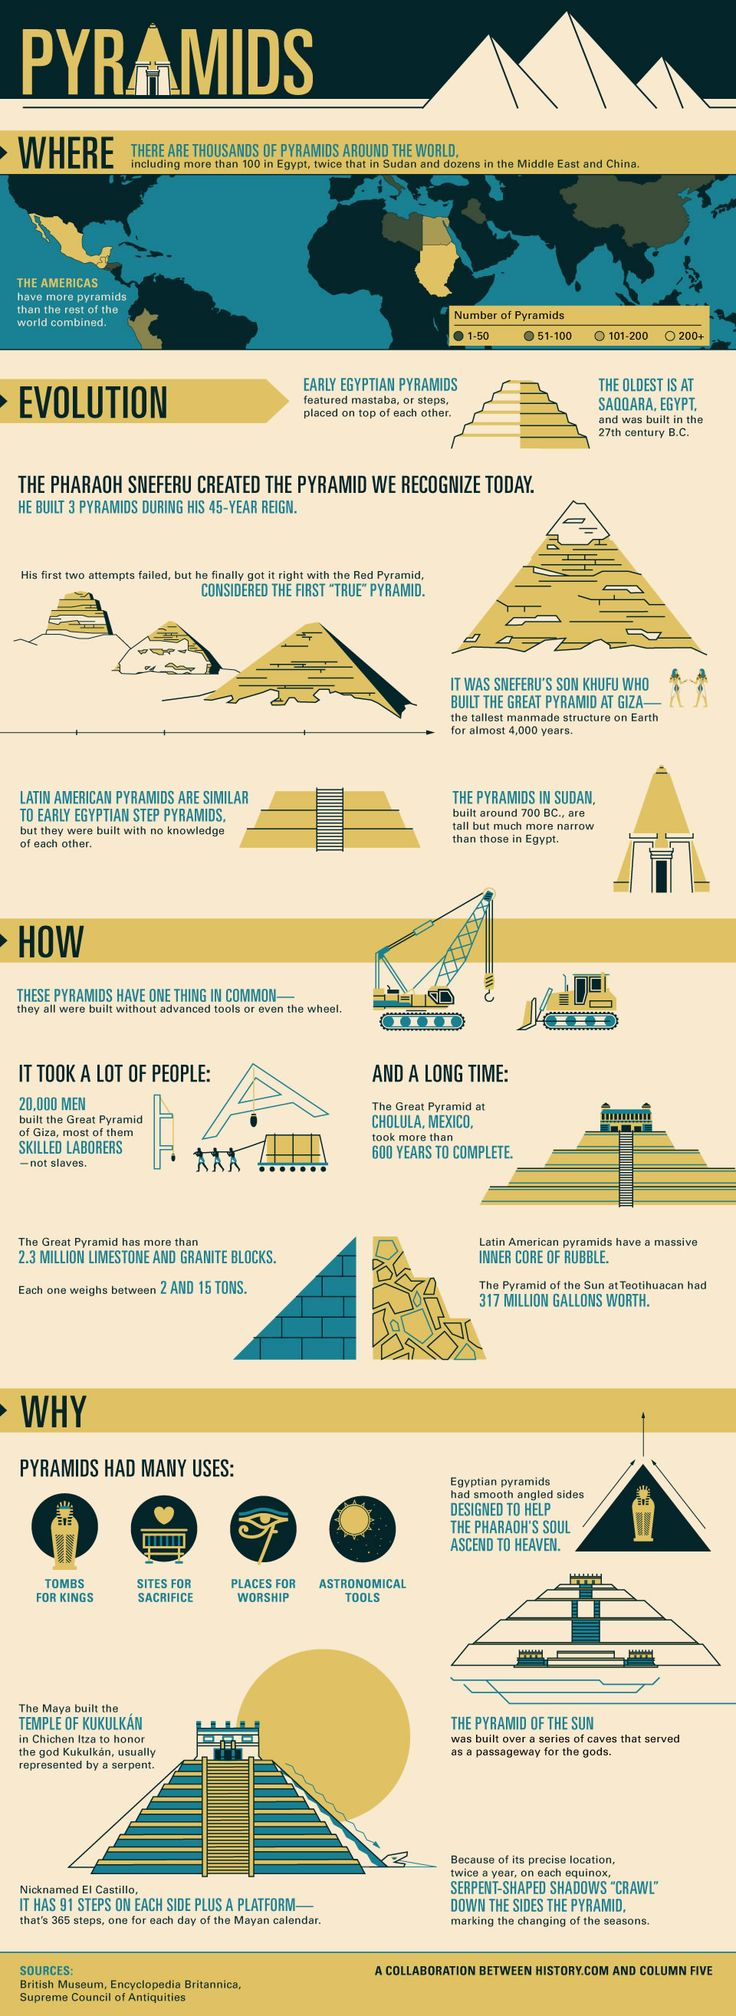 how to visit the pyramid in egypt